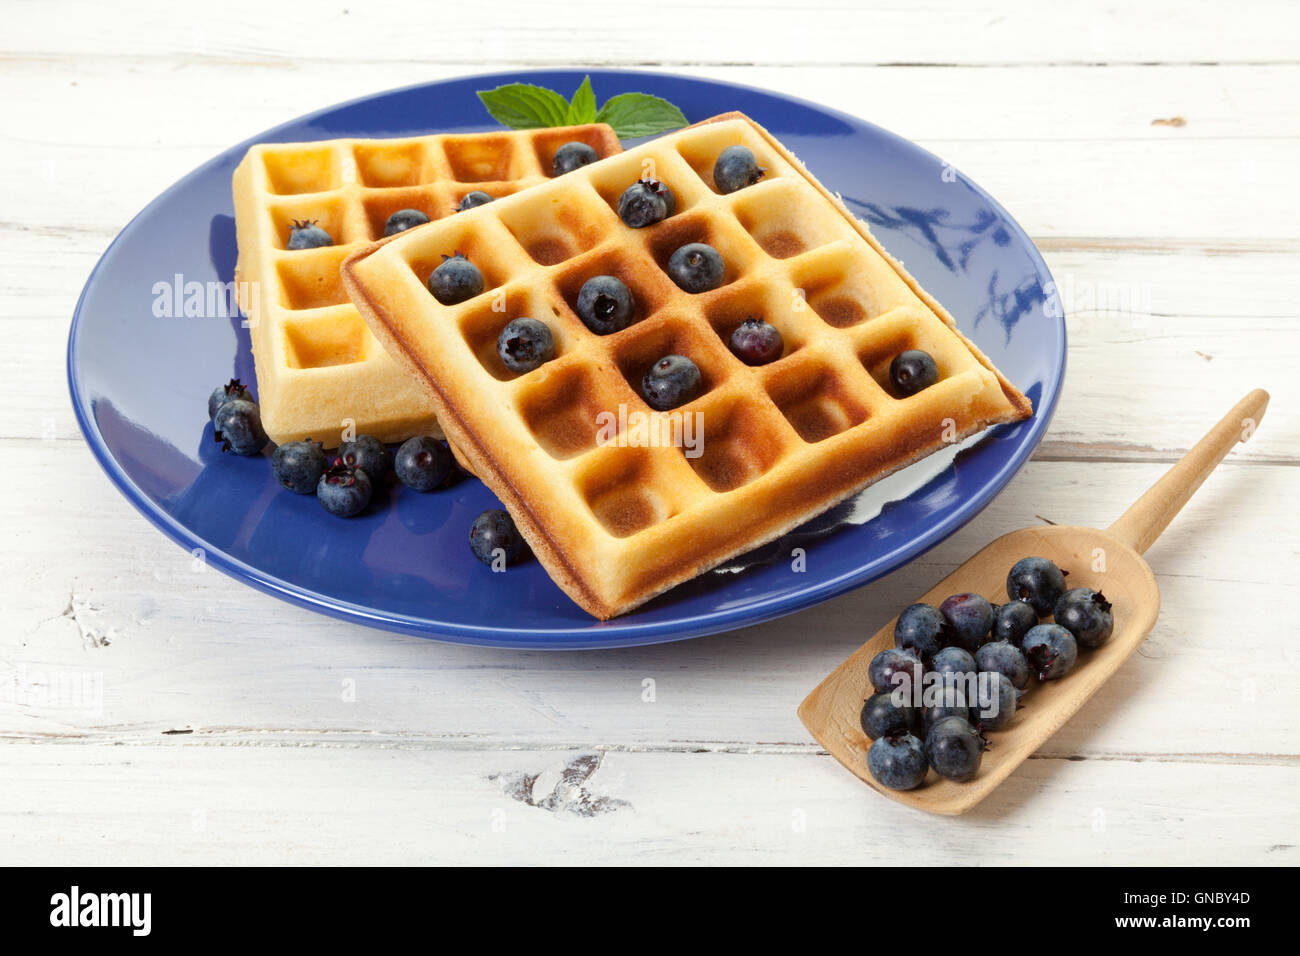 Belgian waffles with blueberries on blue plate, on rustic wooden table - Stock Image